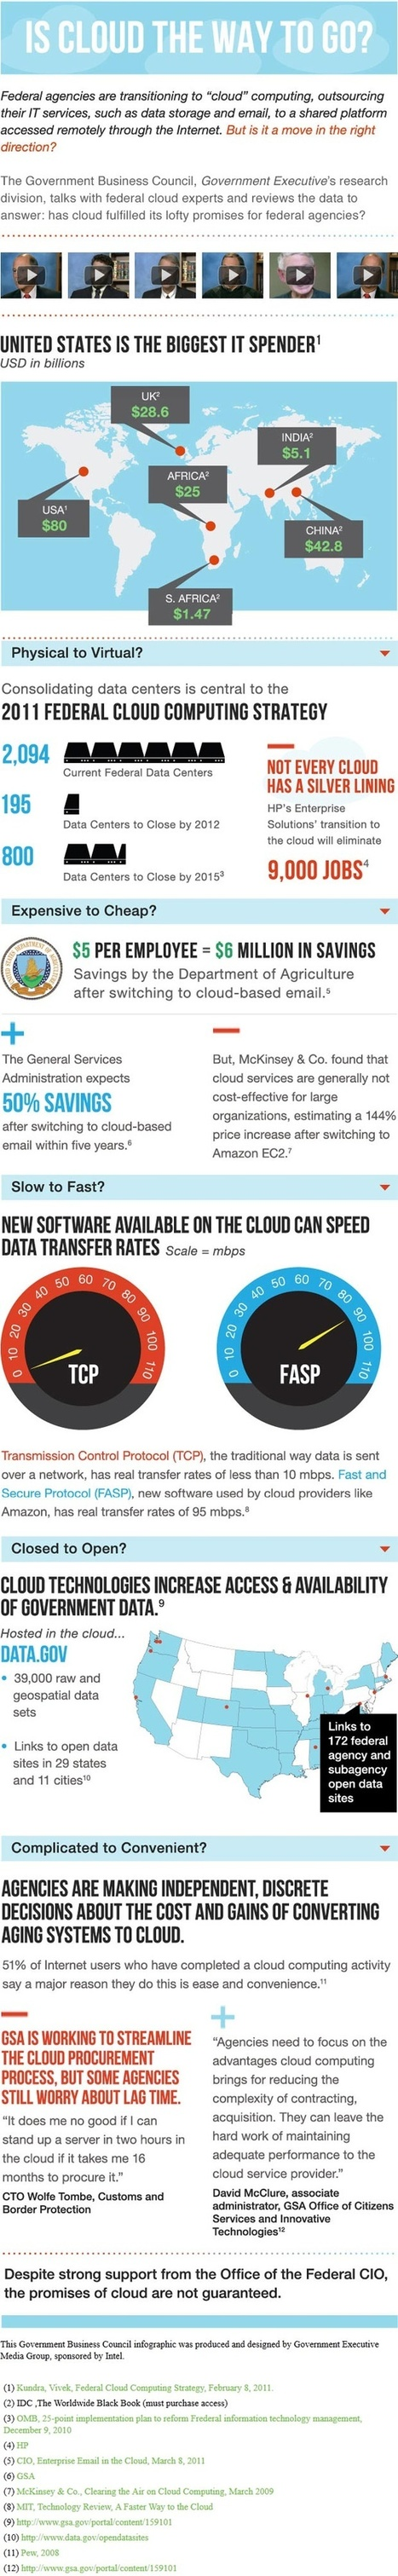 Is Cloud Computing the Way to Go? | Enterprise Architecture ◭ Tech Strategy | Scoop.it